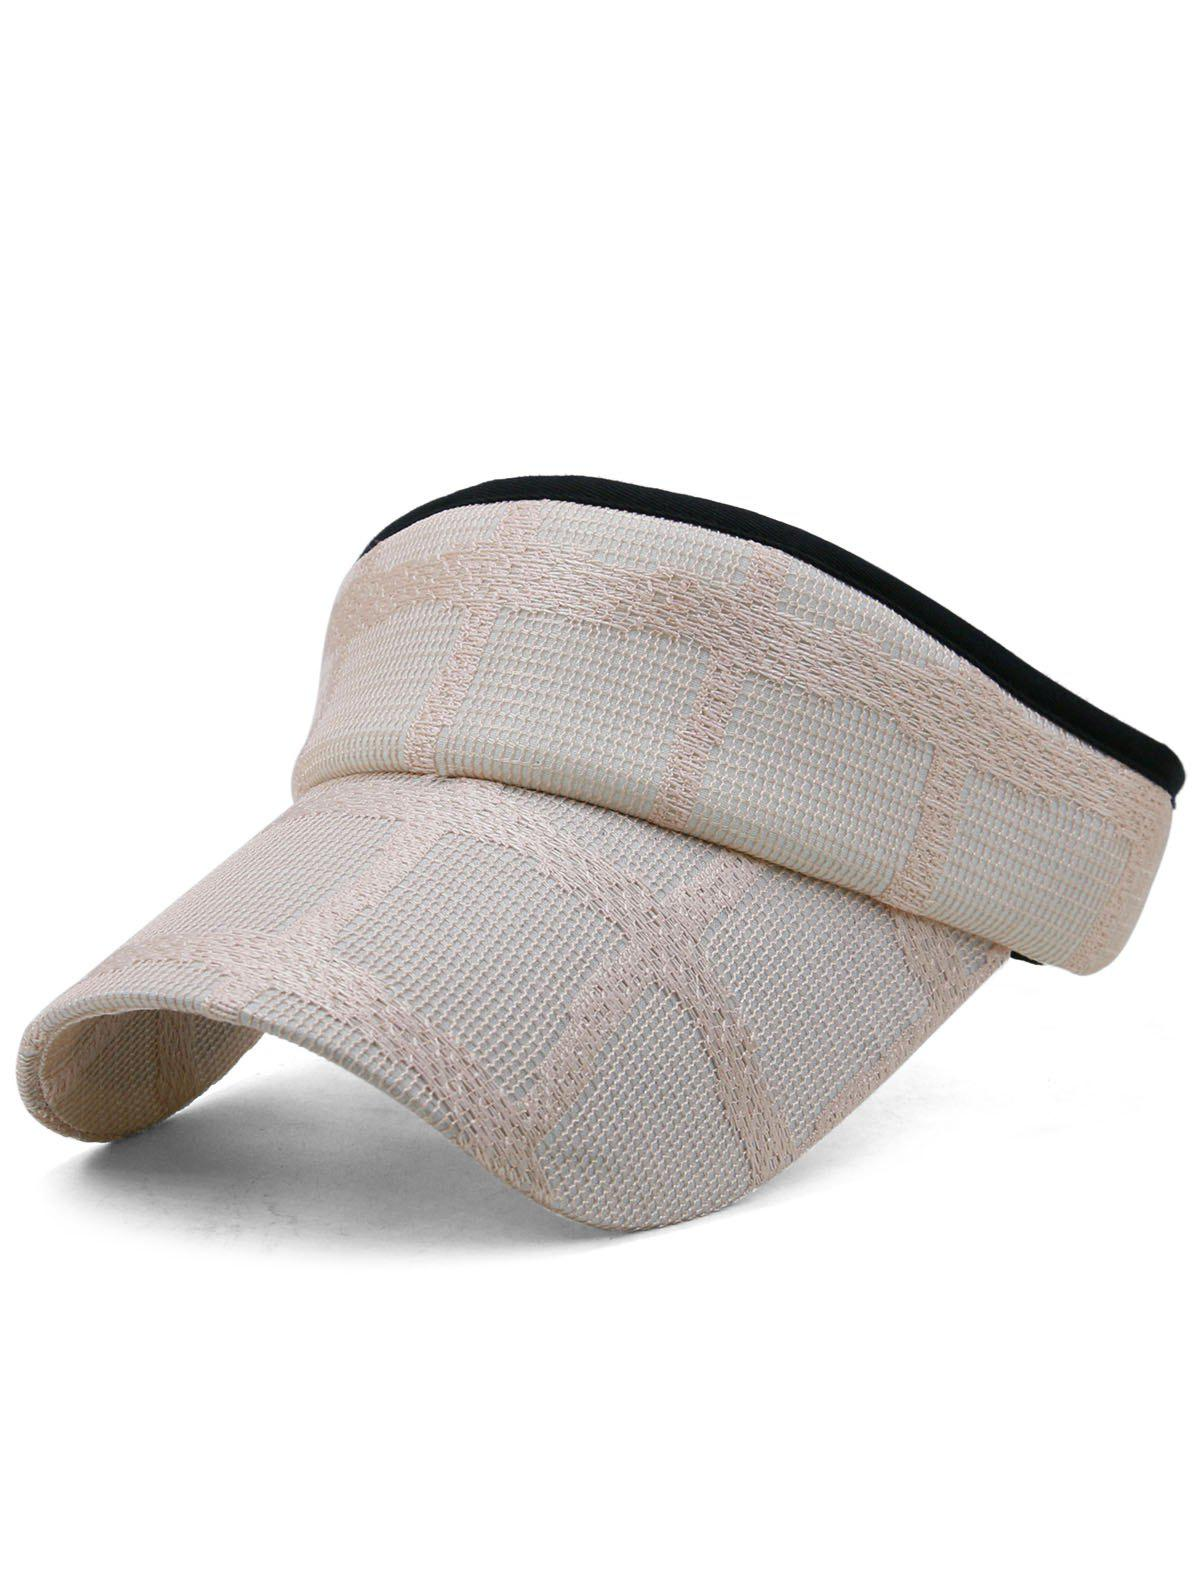 Buy Outdoor Open Top Baseball Visors Hat